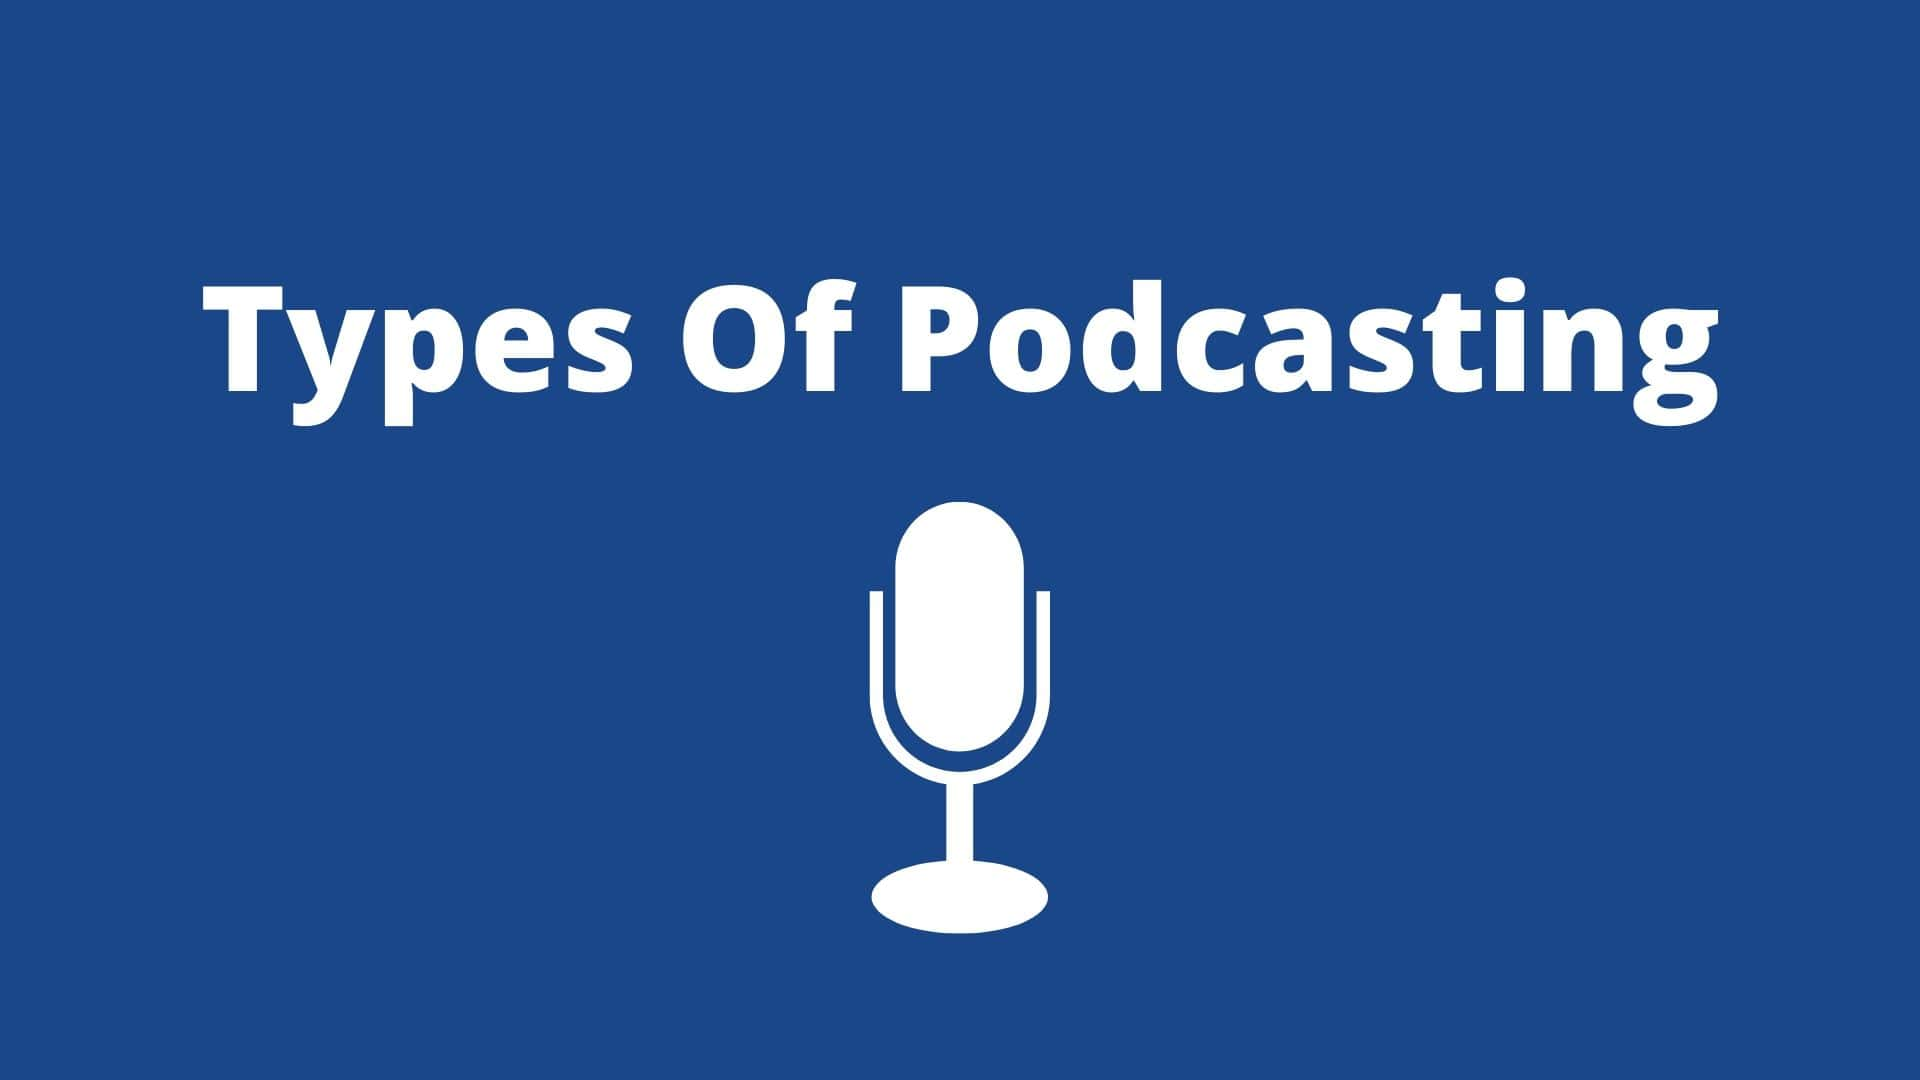 Types Of Podcasting